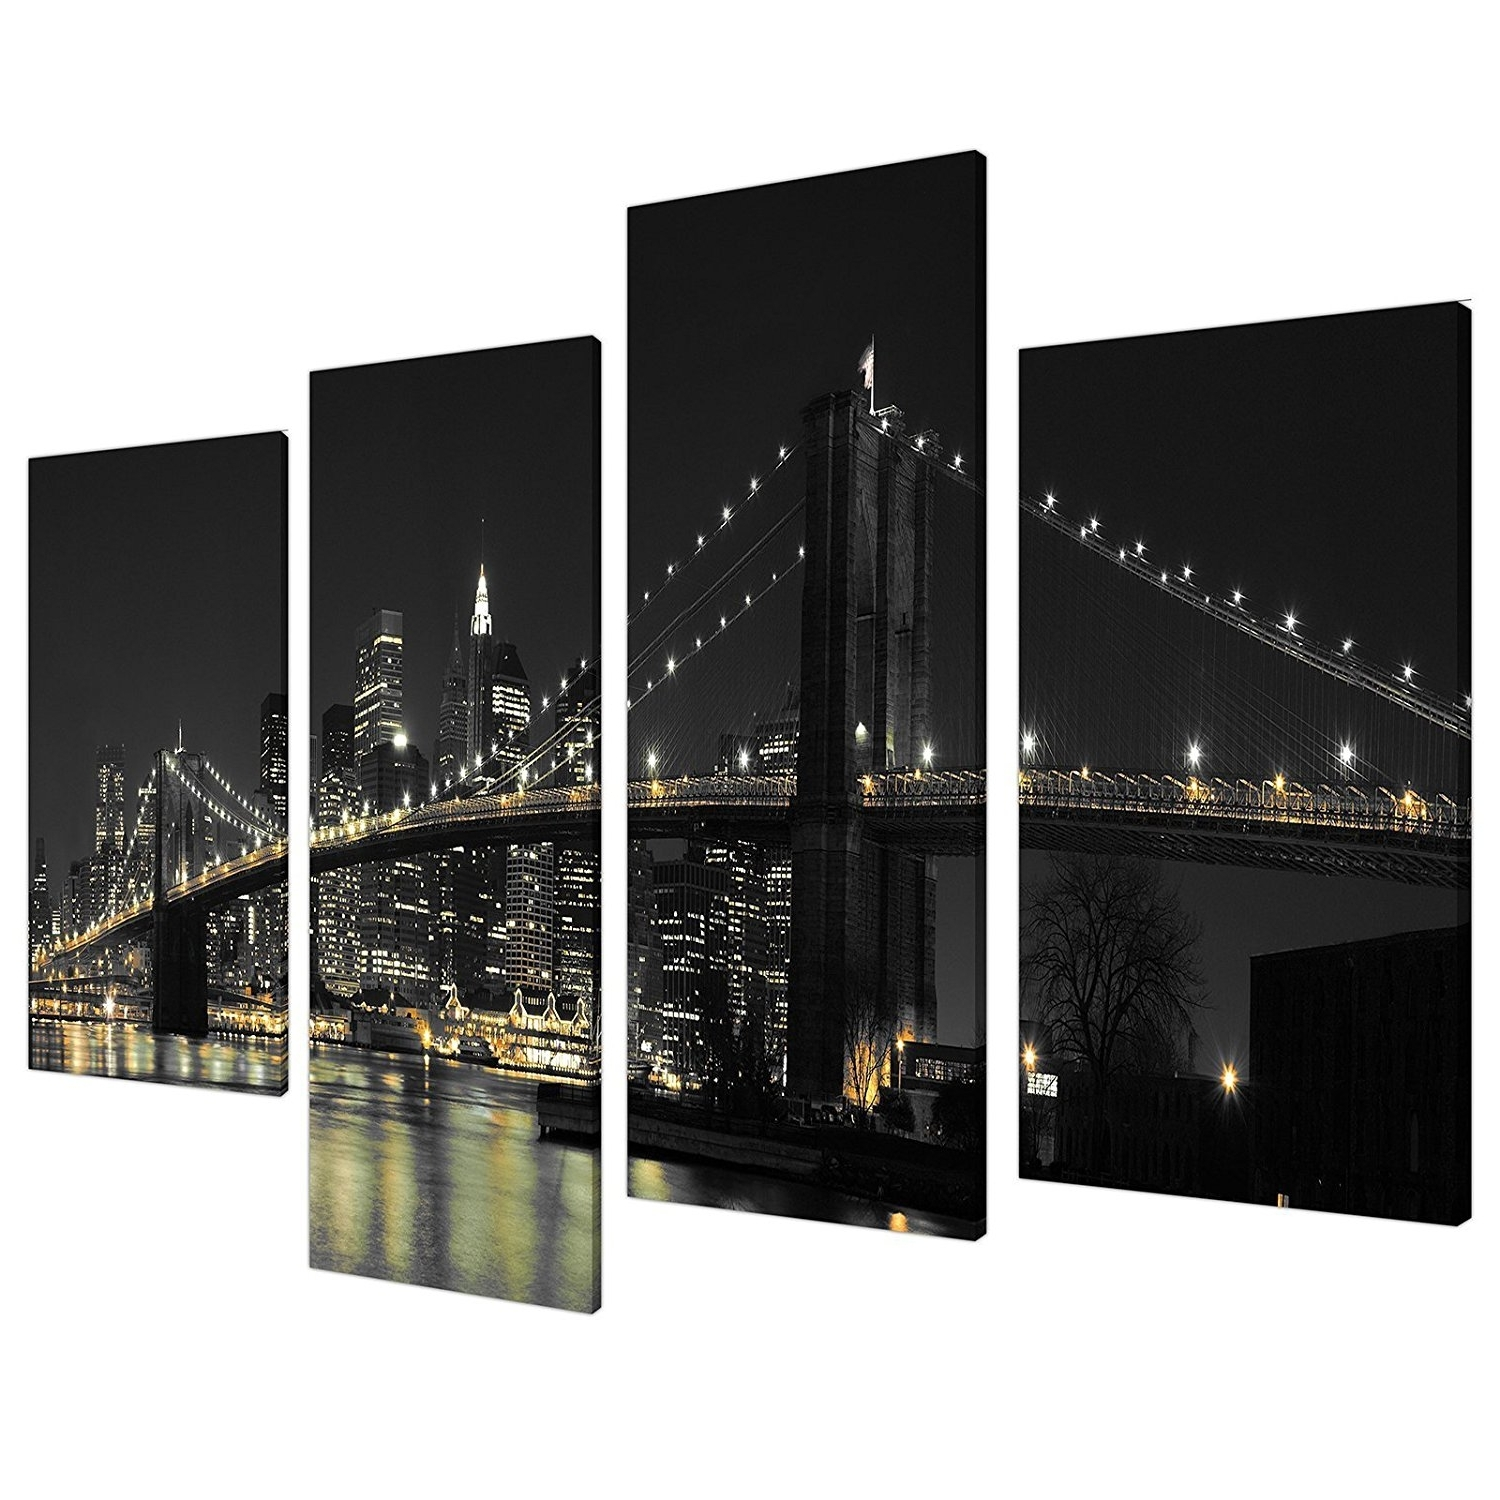 Amazon: Large New York City Canvas Wall Art Pictures Of Nyc Inside Current Canvas Wall Art Of New York City (View 3 of 15)